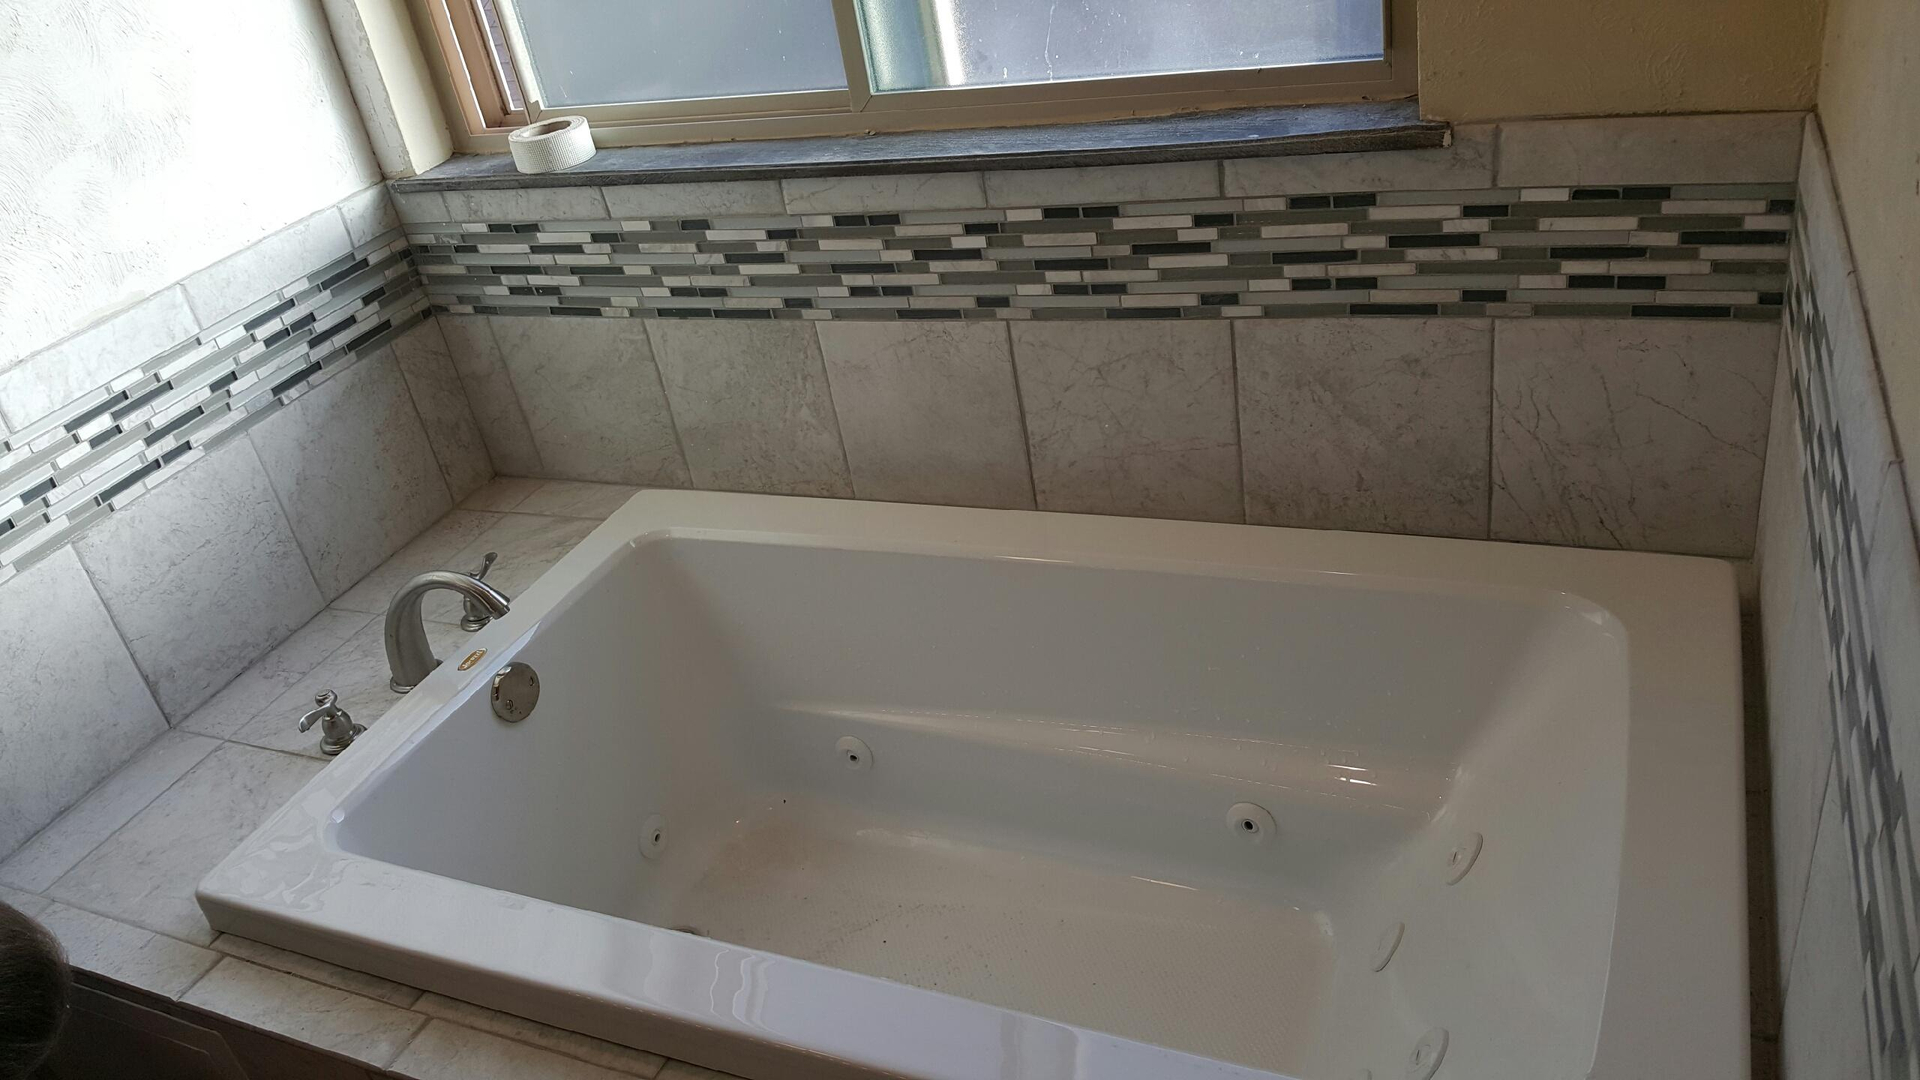 construction okc bathroom remodeling city oklahoma flooring majestic remodel pin